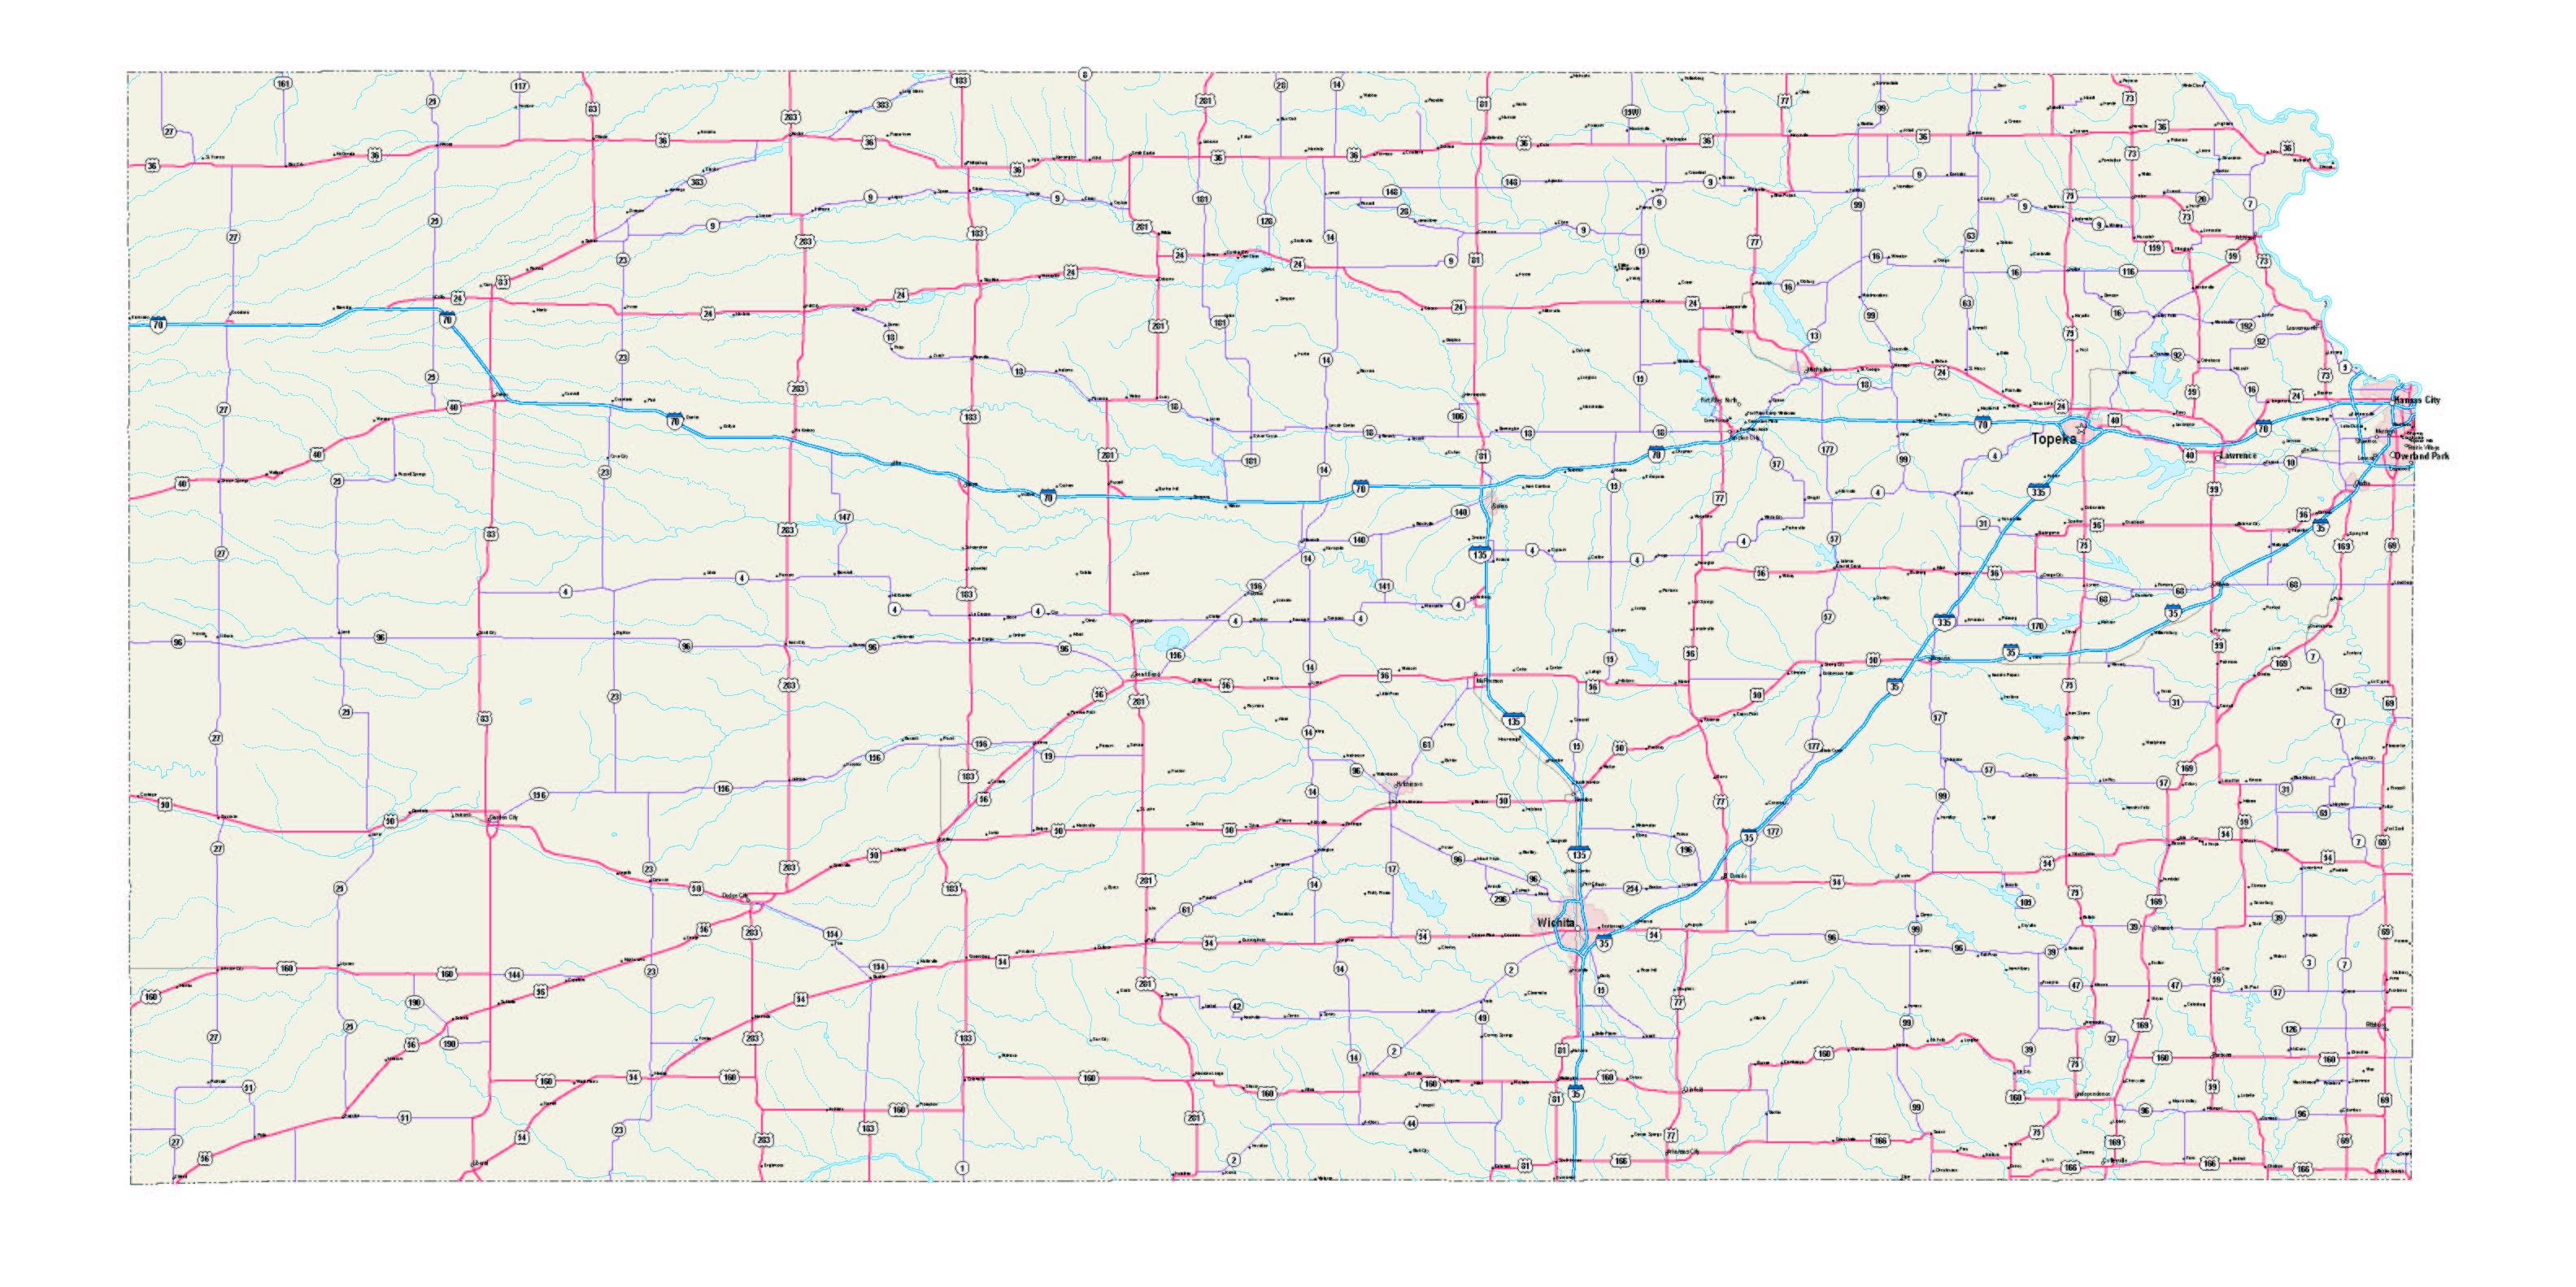 Road Map Of Kansas kansas maps   kansas map   kansas Road map   kansas state map